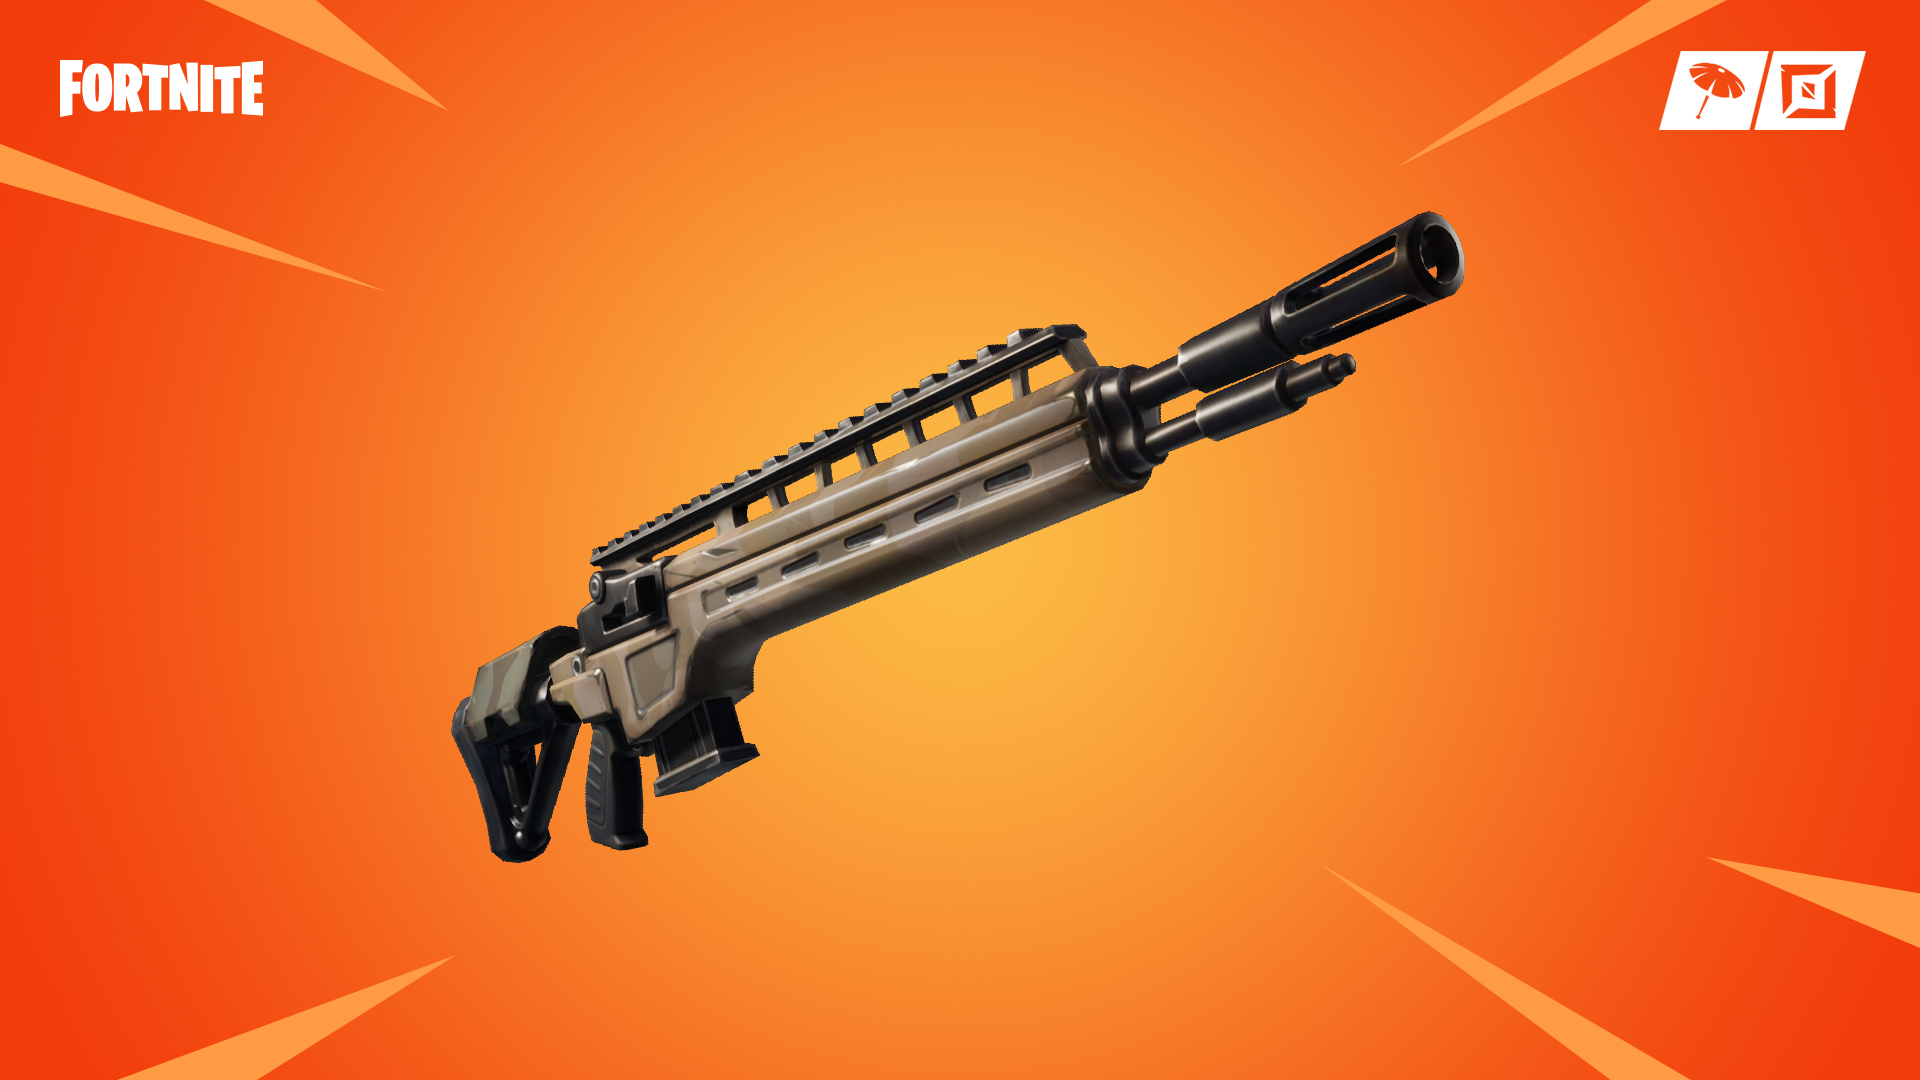 Photo of Fortnite 8.40 brings new Infantry Rifle and Air Royale LTM, patch notes revealed